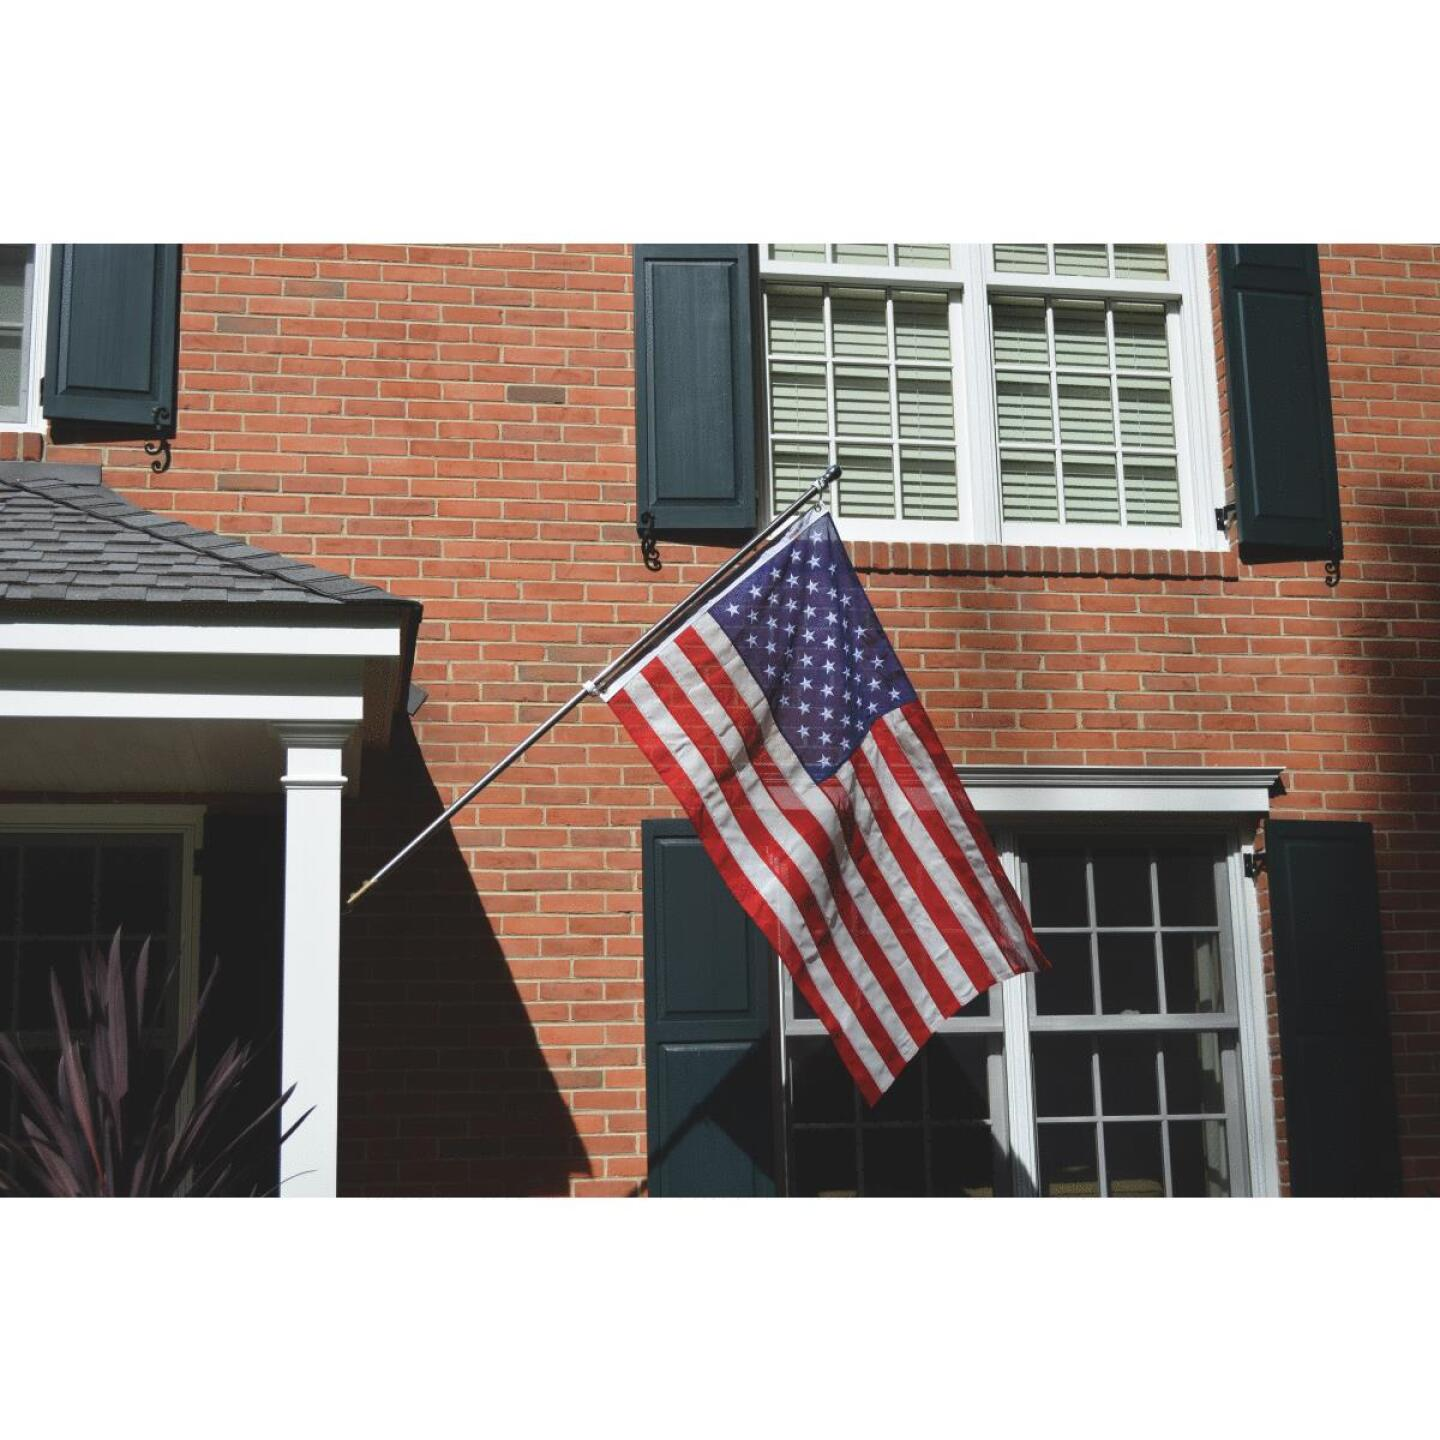 Valley Forge 3 Ft. x 5 Ft. Cotton Natural Series American Flag Image 2